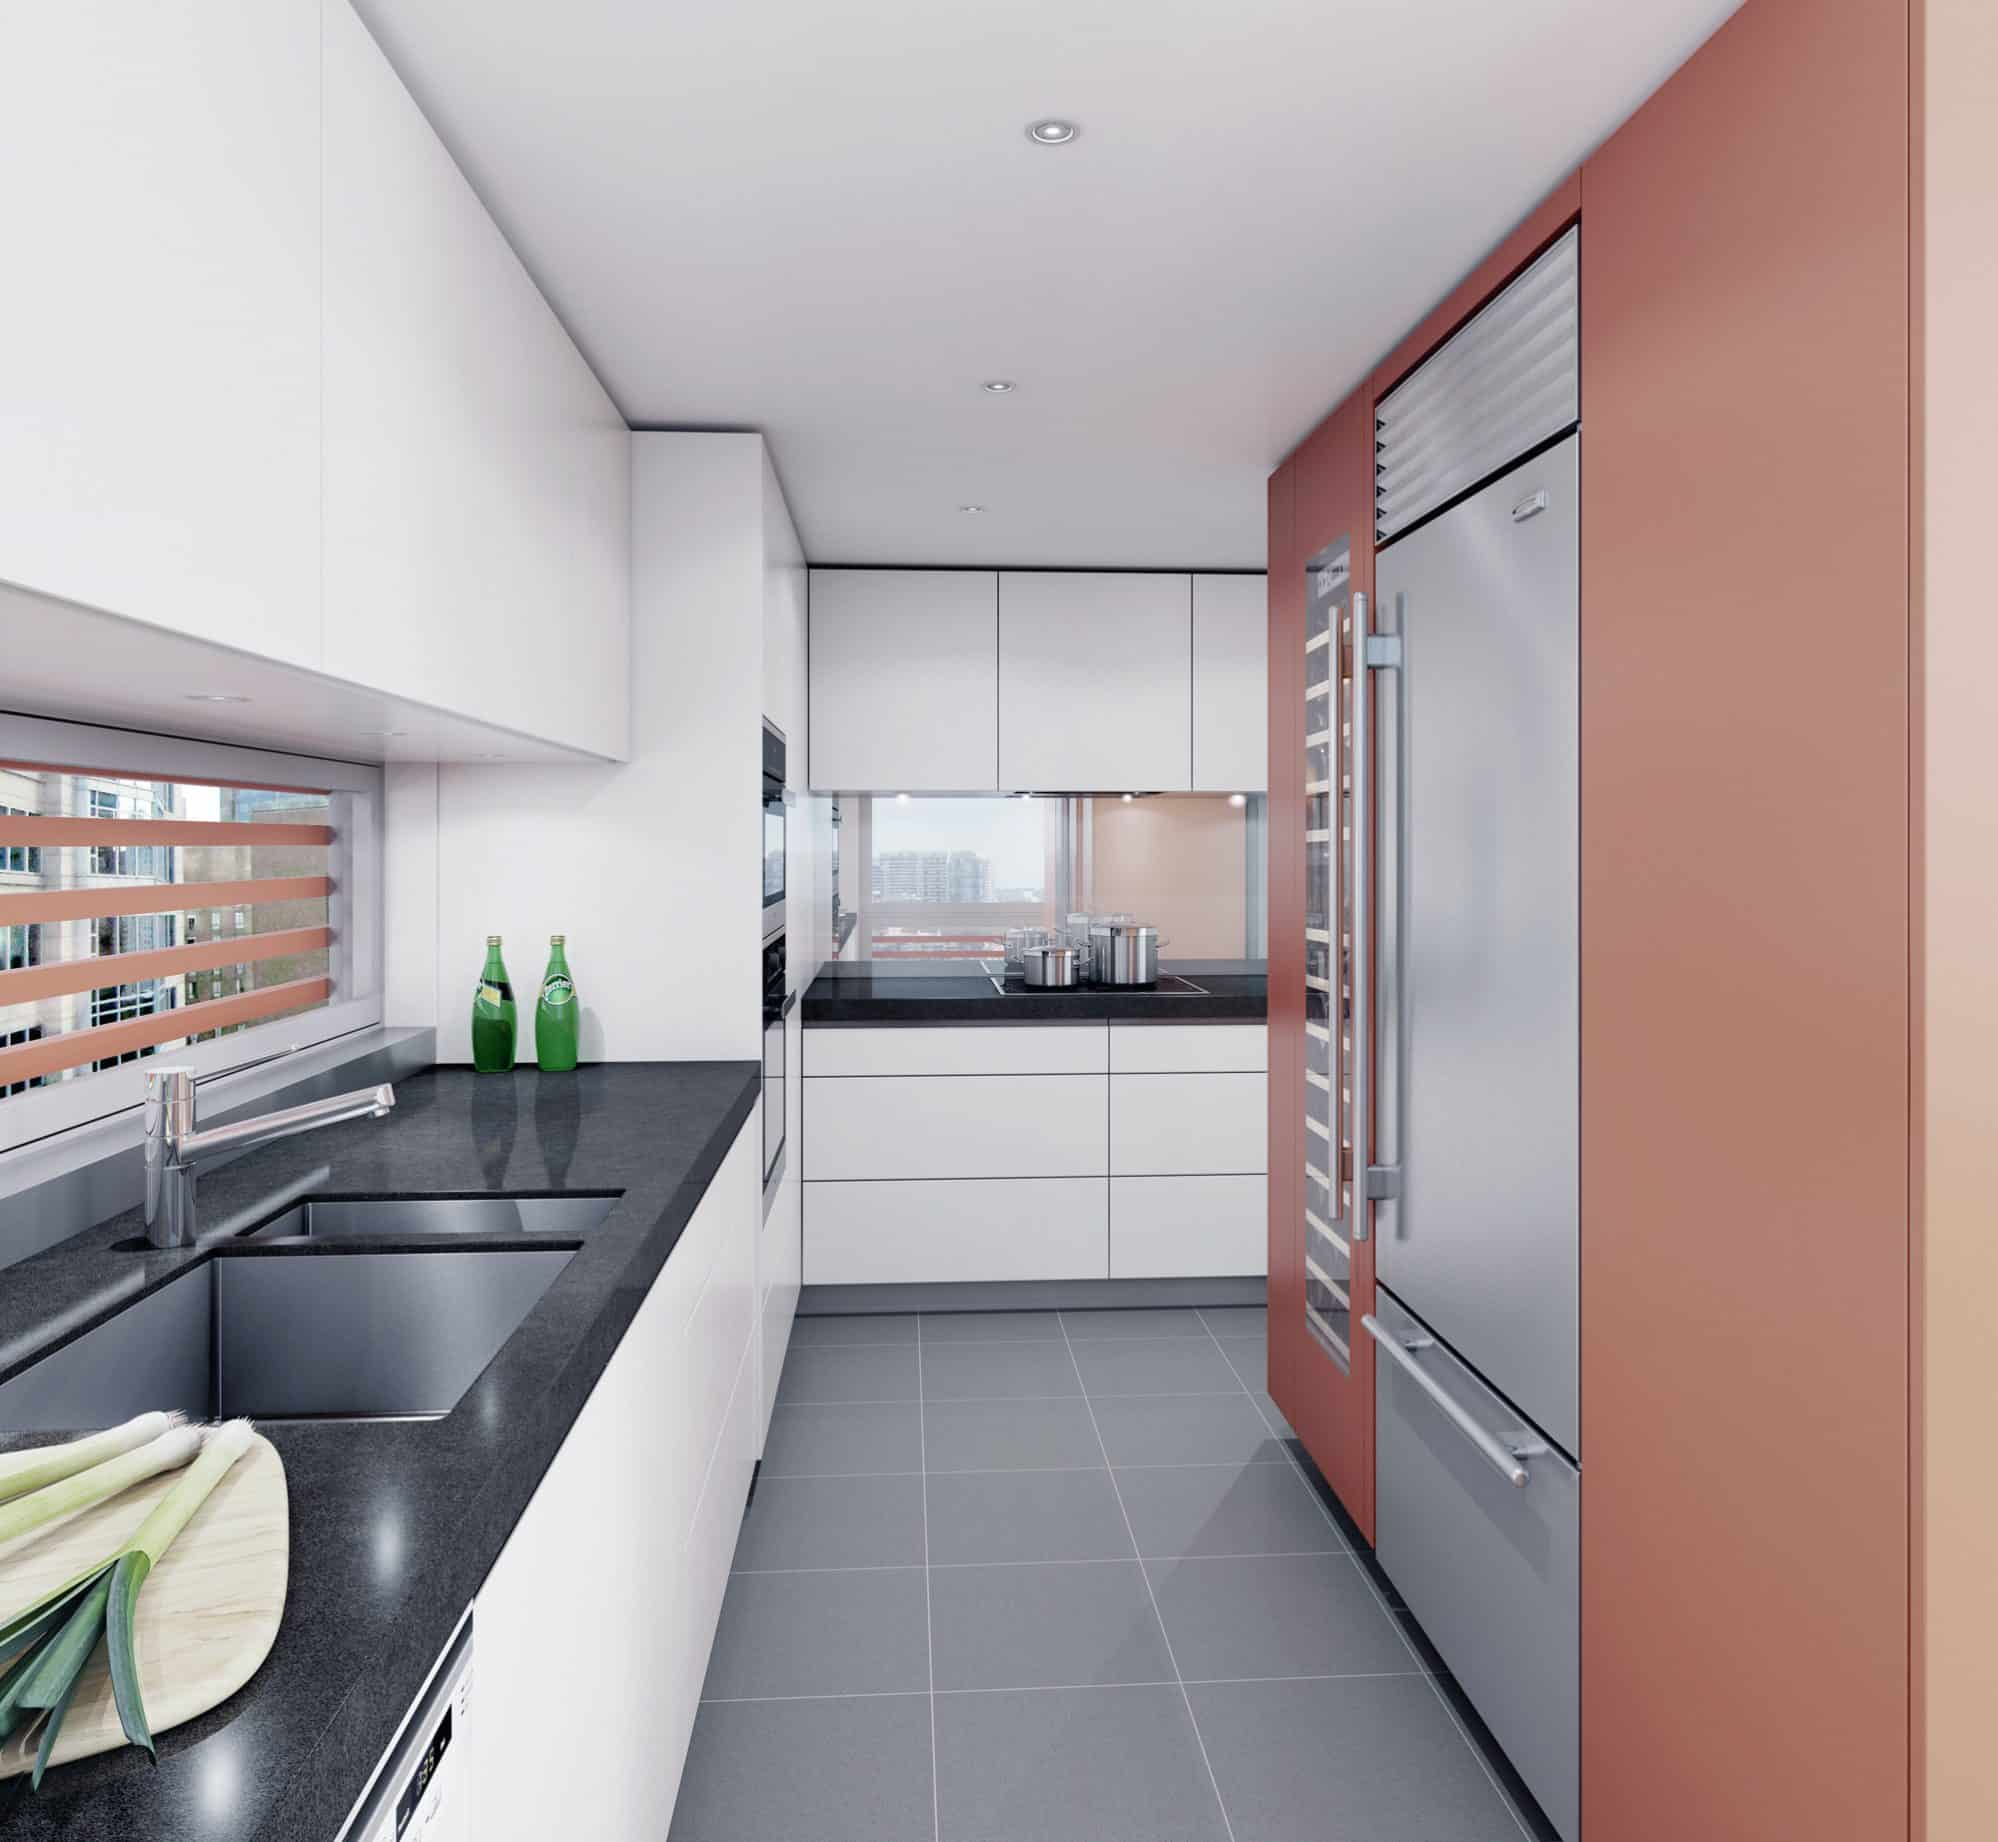 The design of the kitchen